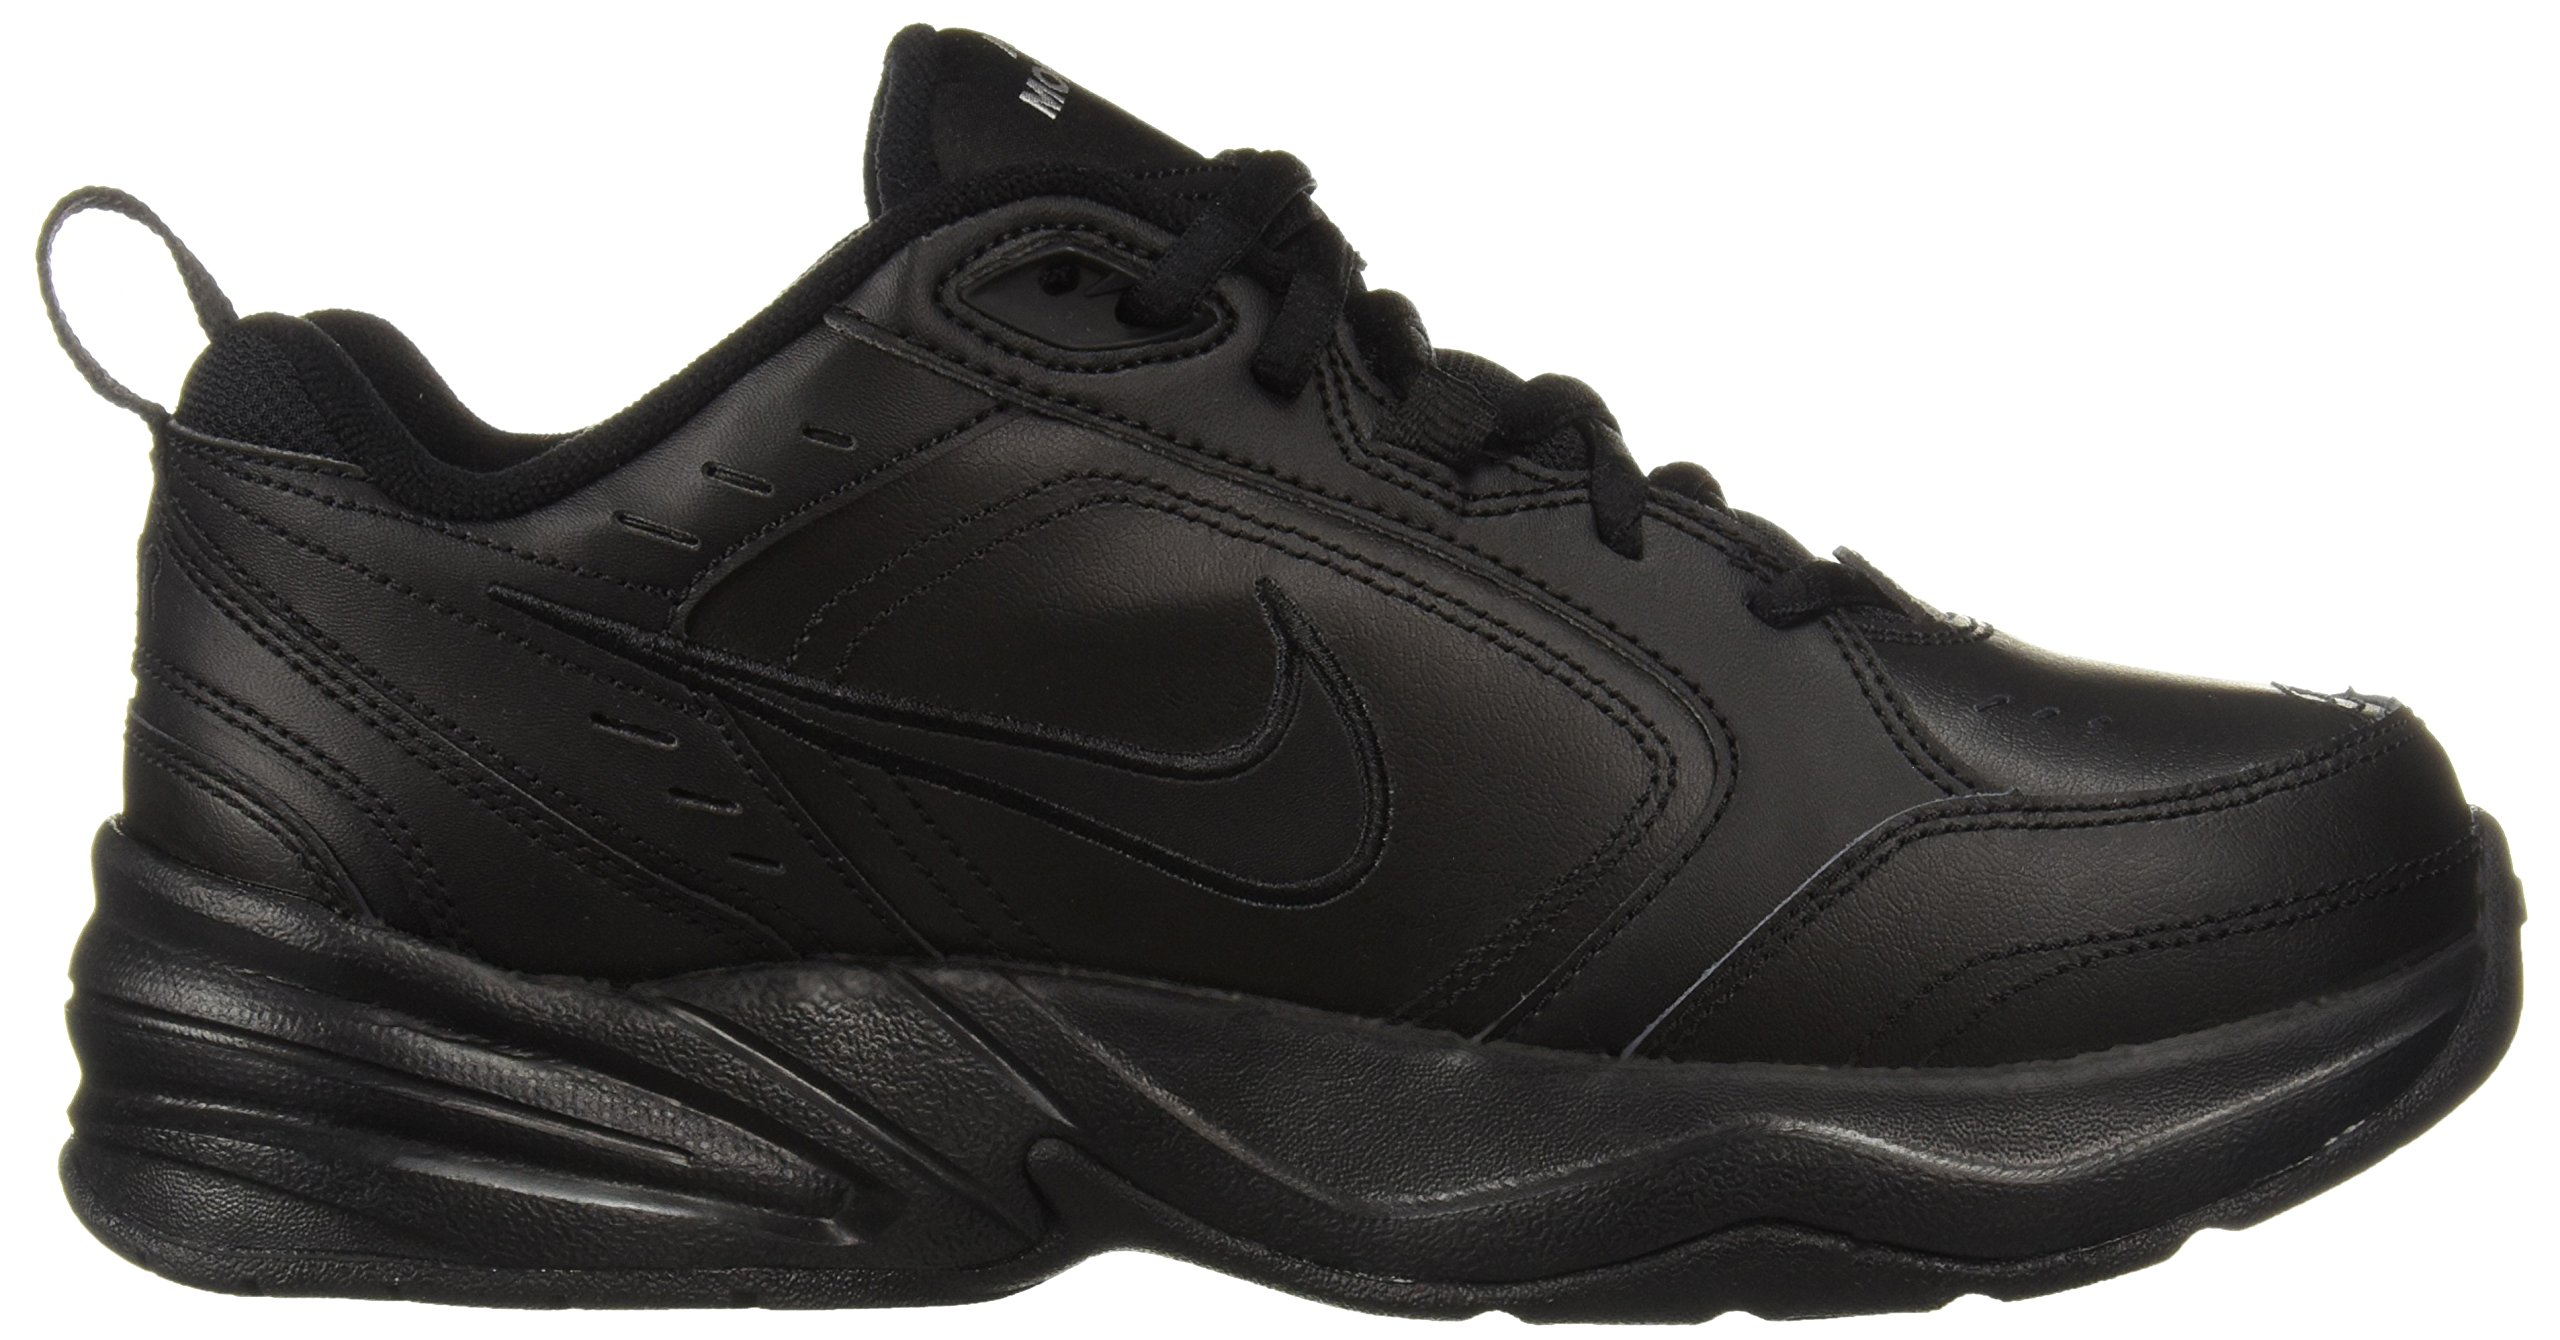 Nike Men's Air Monarch IV Cross Trainer, Black, 7.5 4E US by Nike (Image #7)